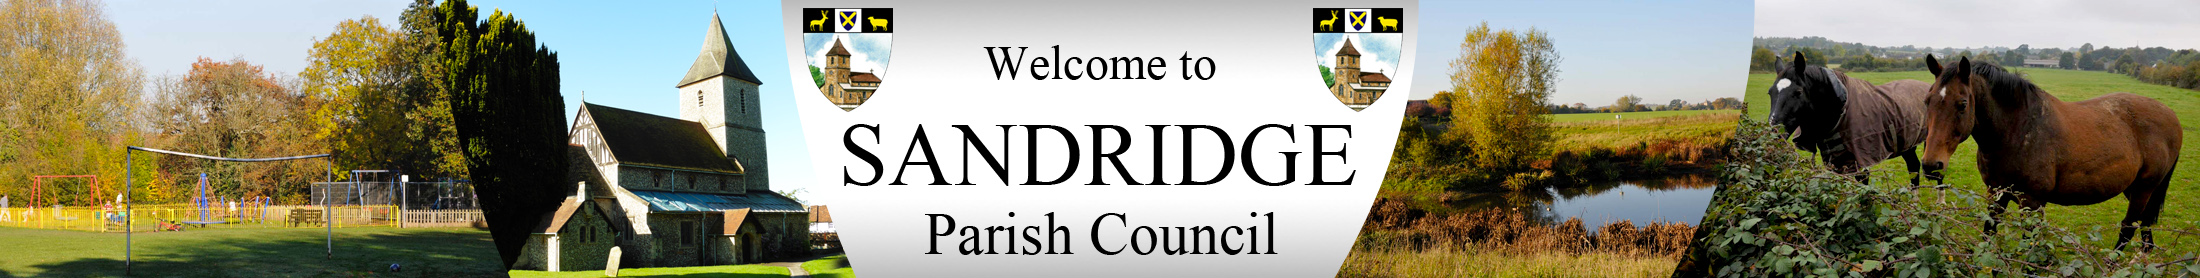 Header Image for Sandridge Parish Council